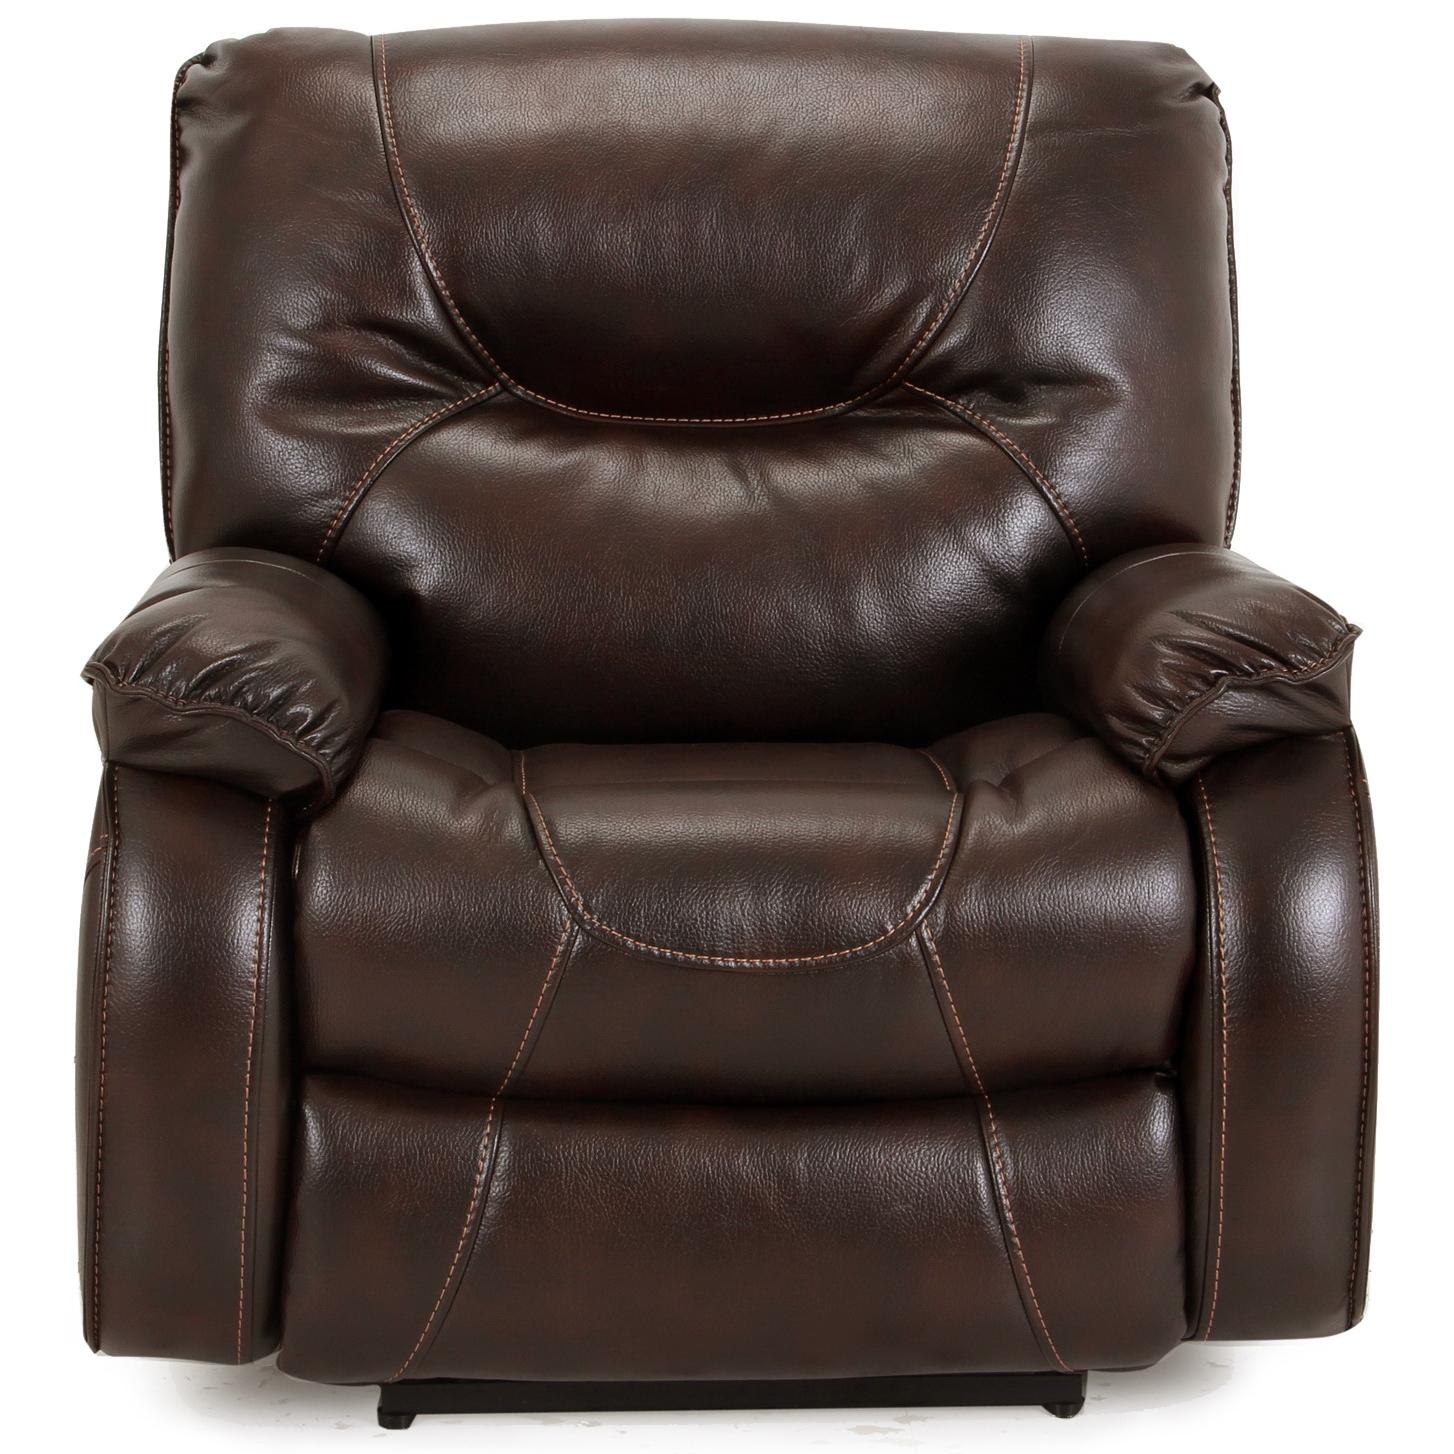 Parker Living Argus Argus Power Recliner - Item Number: MARG 812P-NU